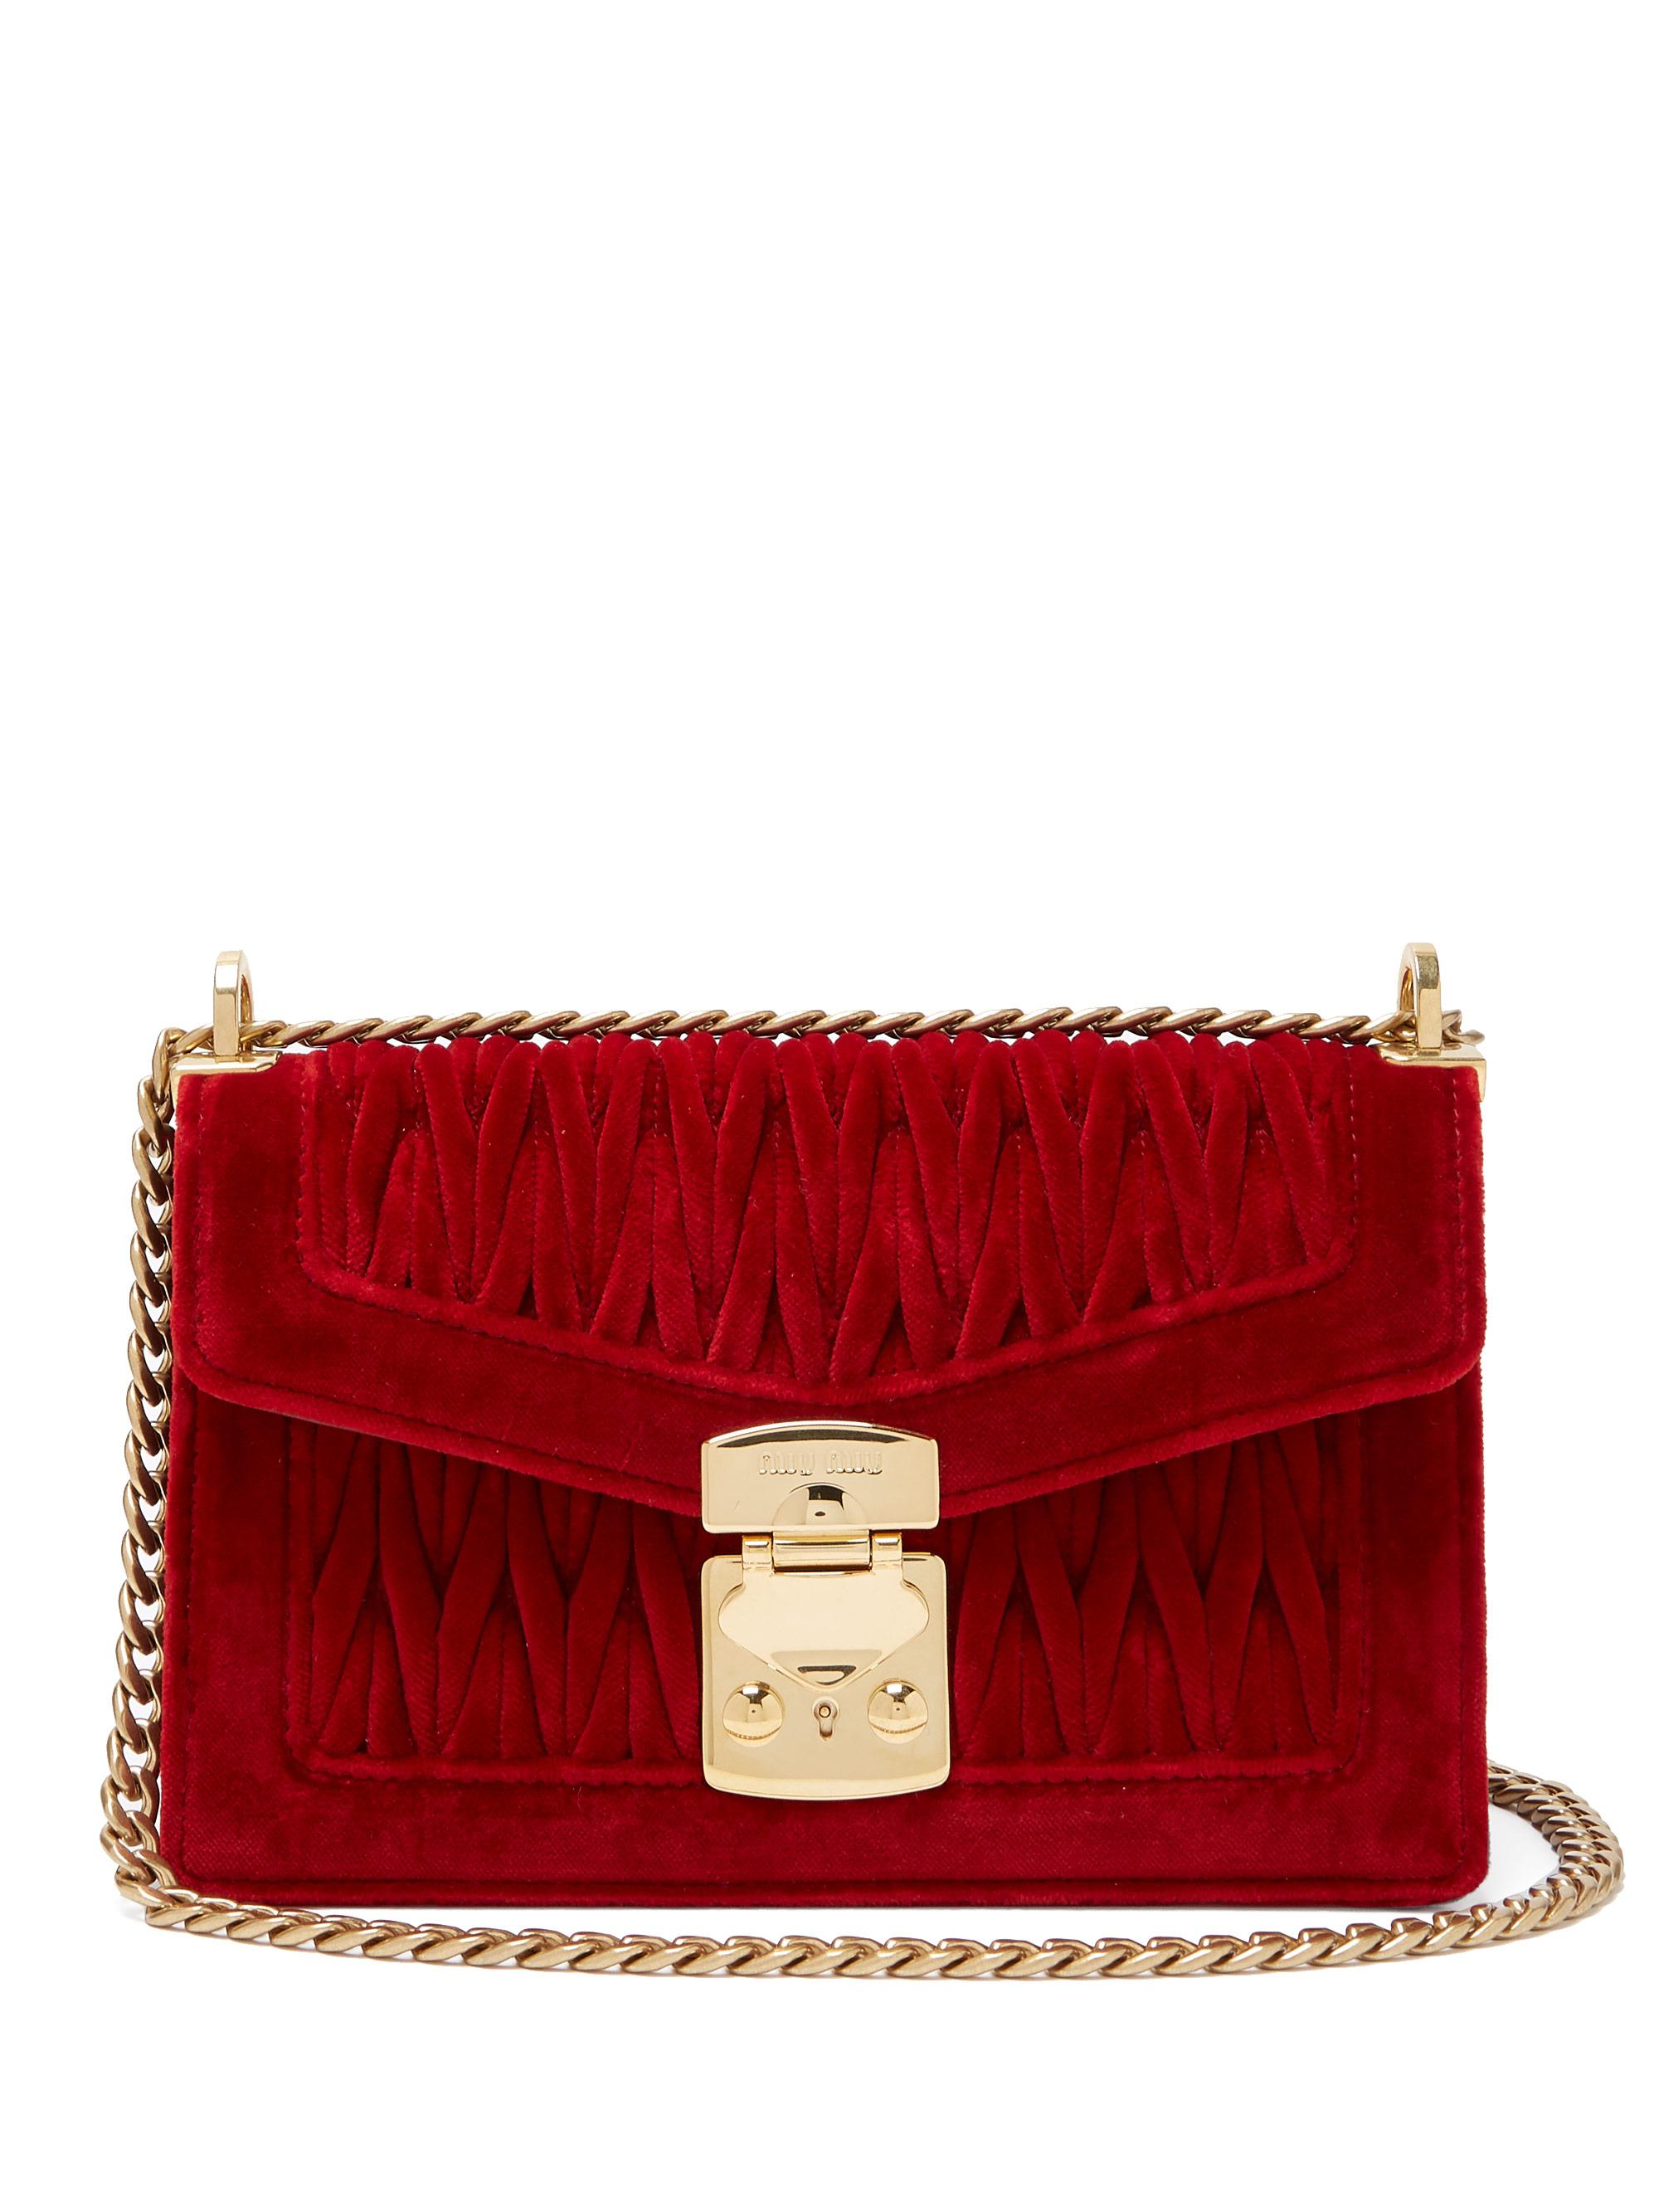 4. Miu Miu Confidential Matelassé-Velvet Shoulder Bag $1,700 from www.matchesfashion.com